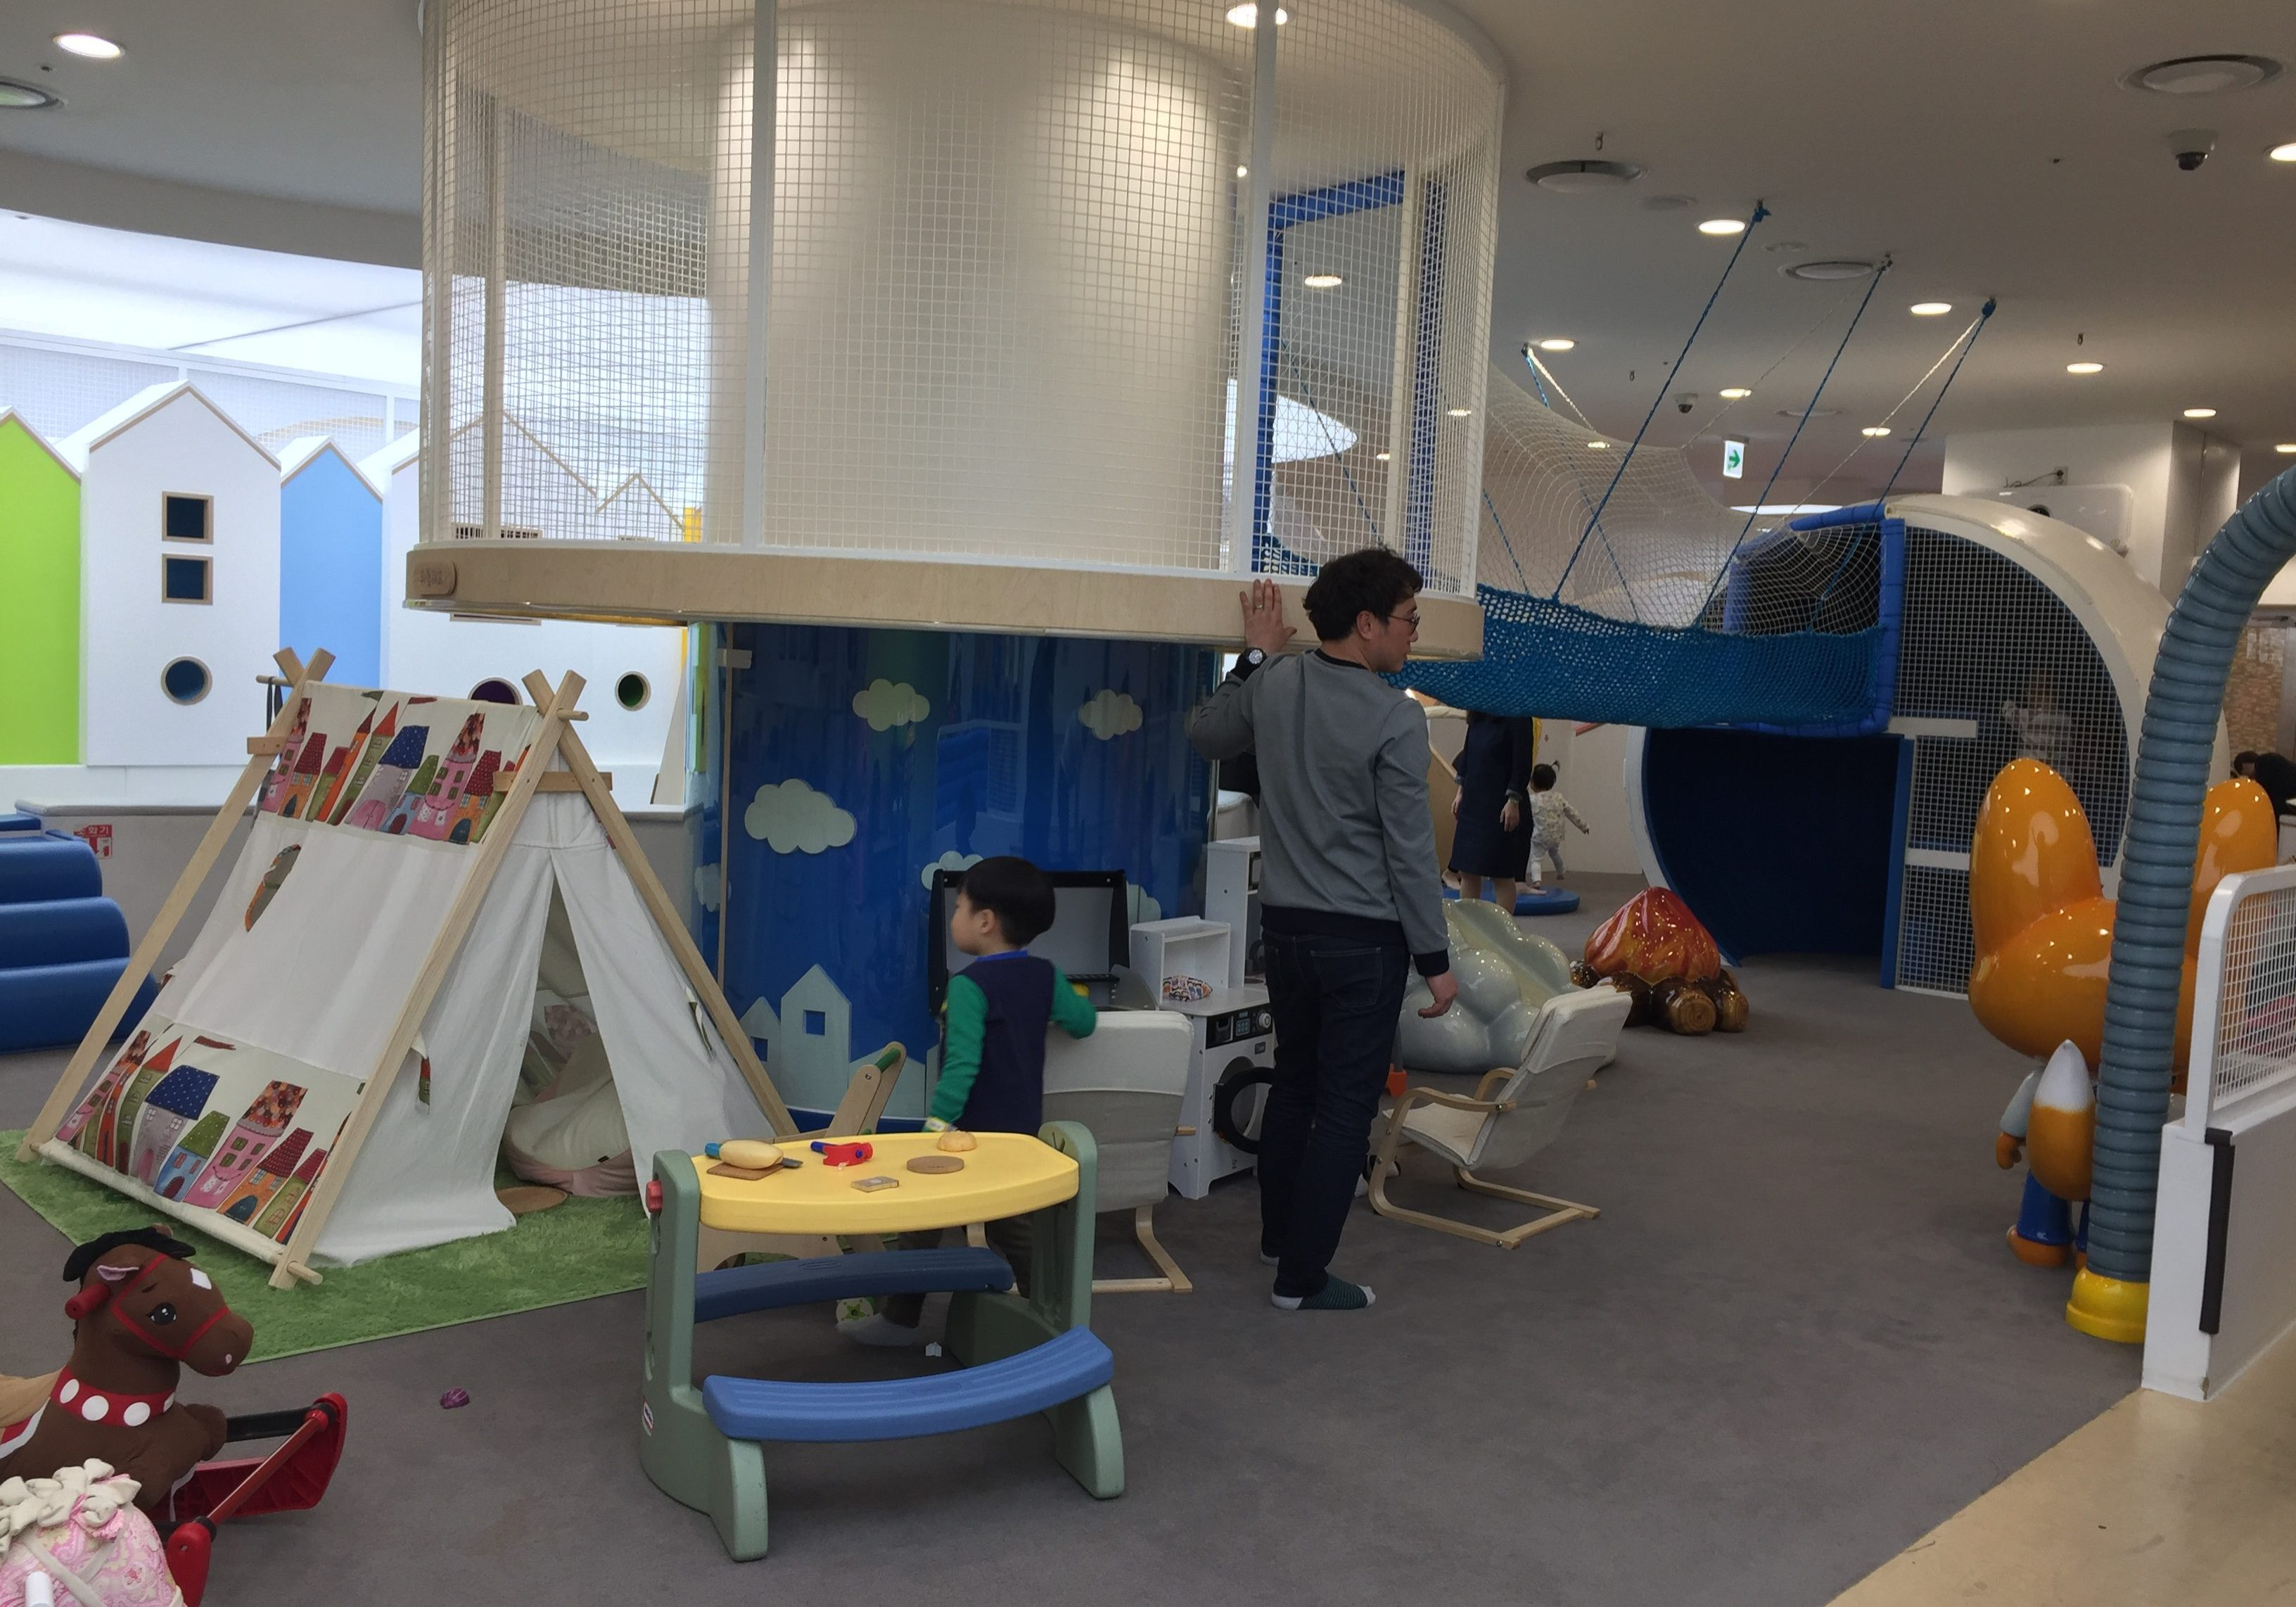 Pororo lounge kids cafe Seoul